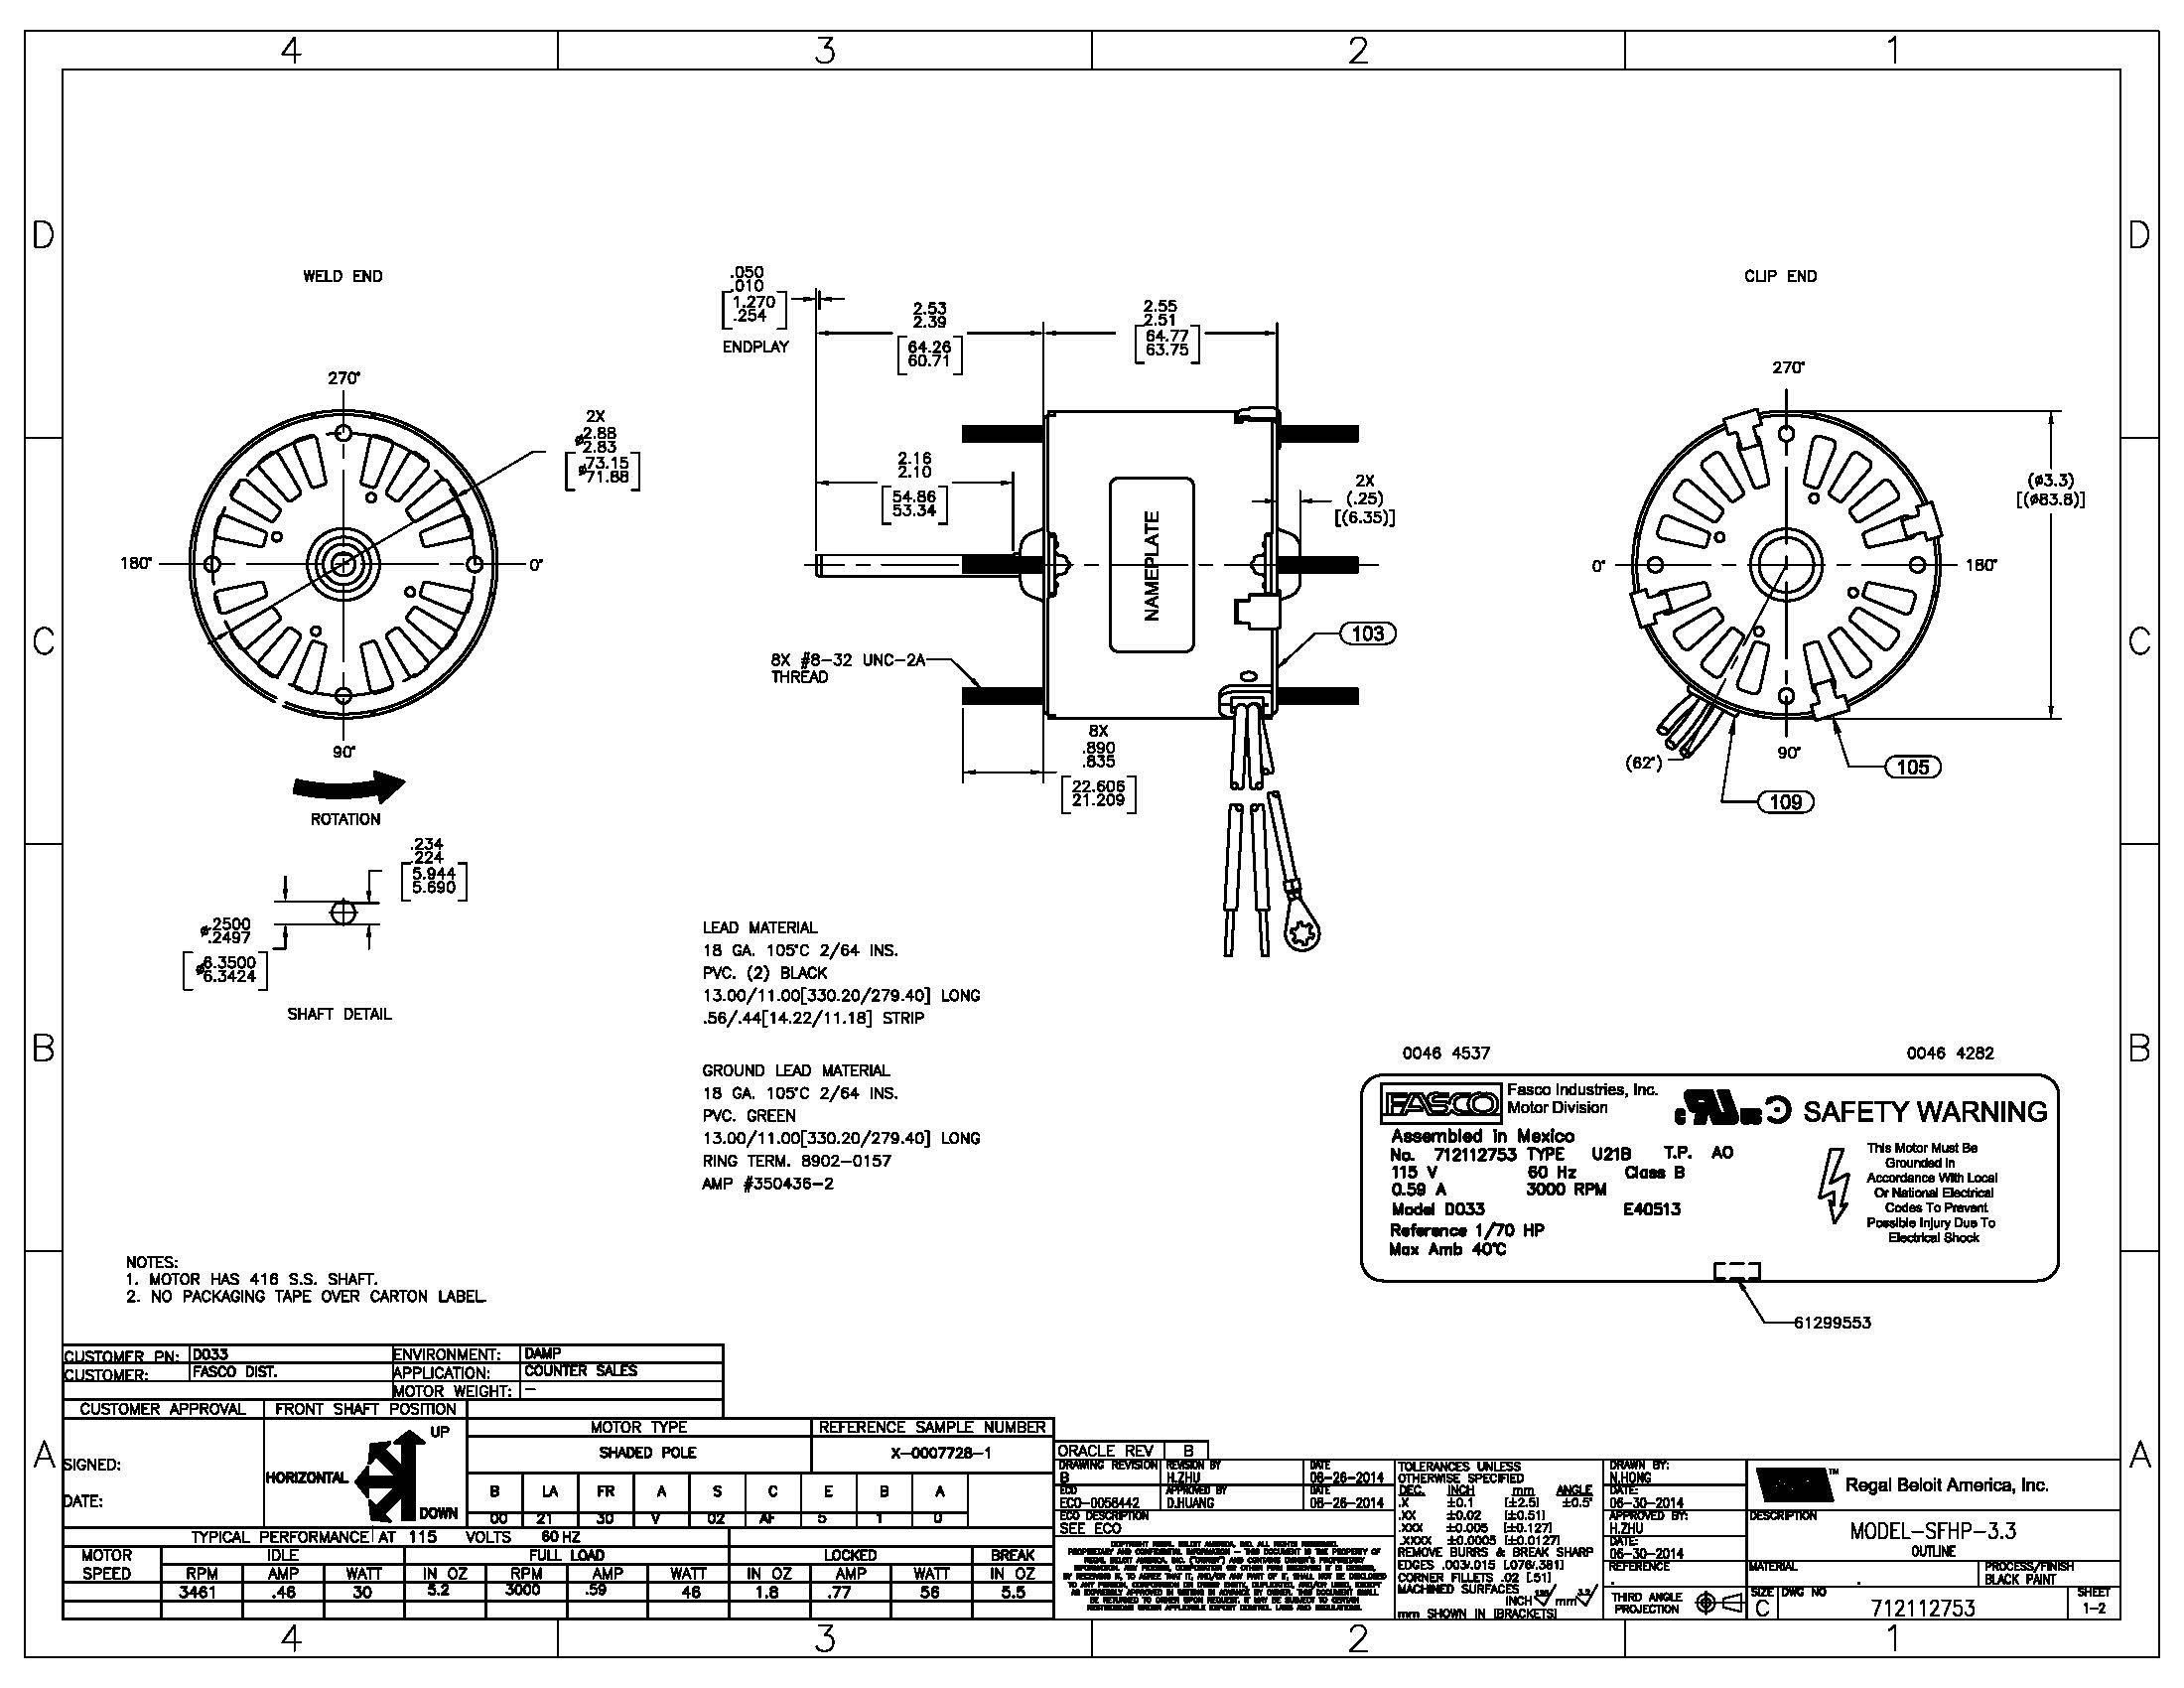 Squirrel Cage Fan Wiring Diagram Switch Wiring Diagram Furnace Fan Wiring  Diagram Hvac Fan Motor Wiring Diagram